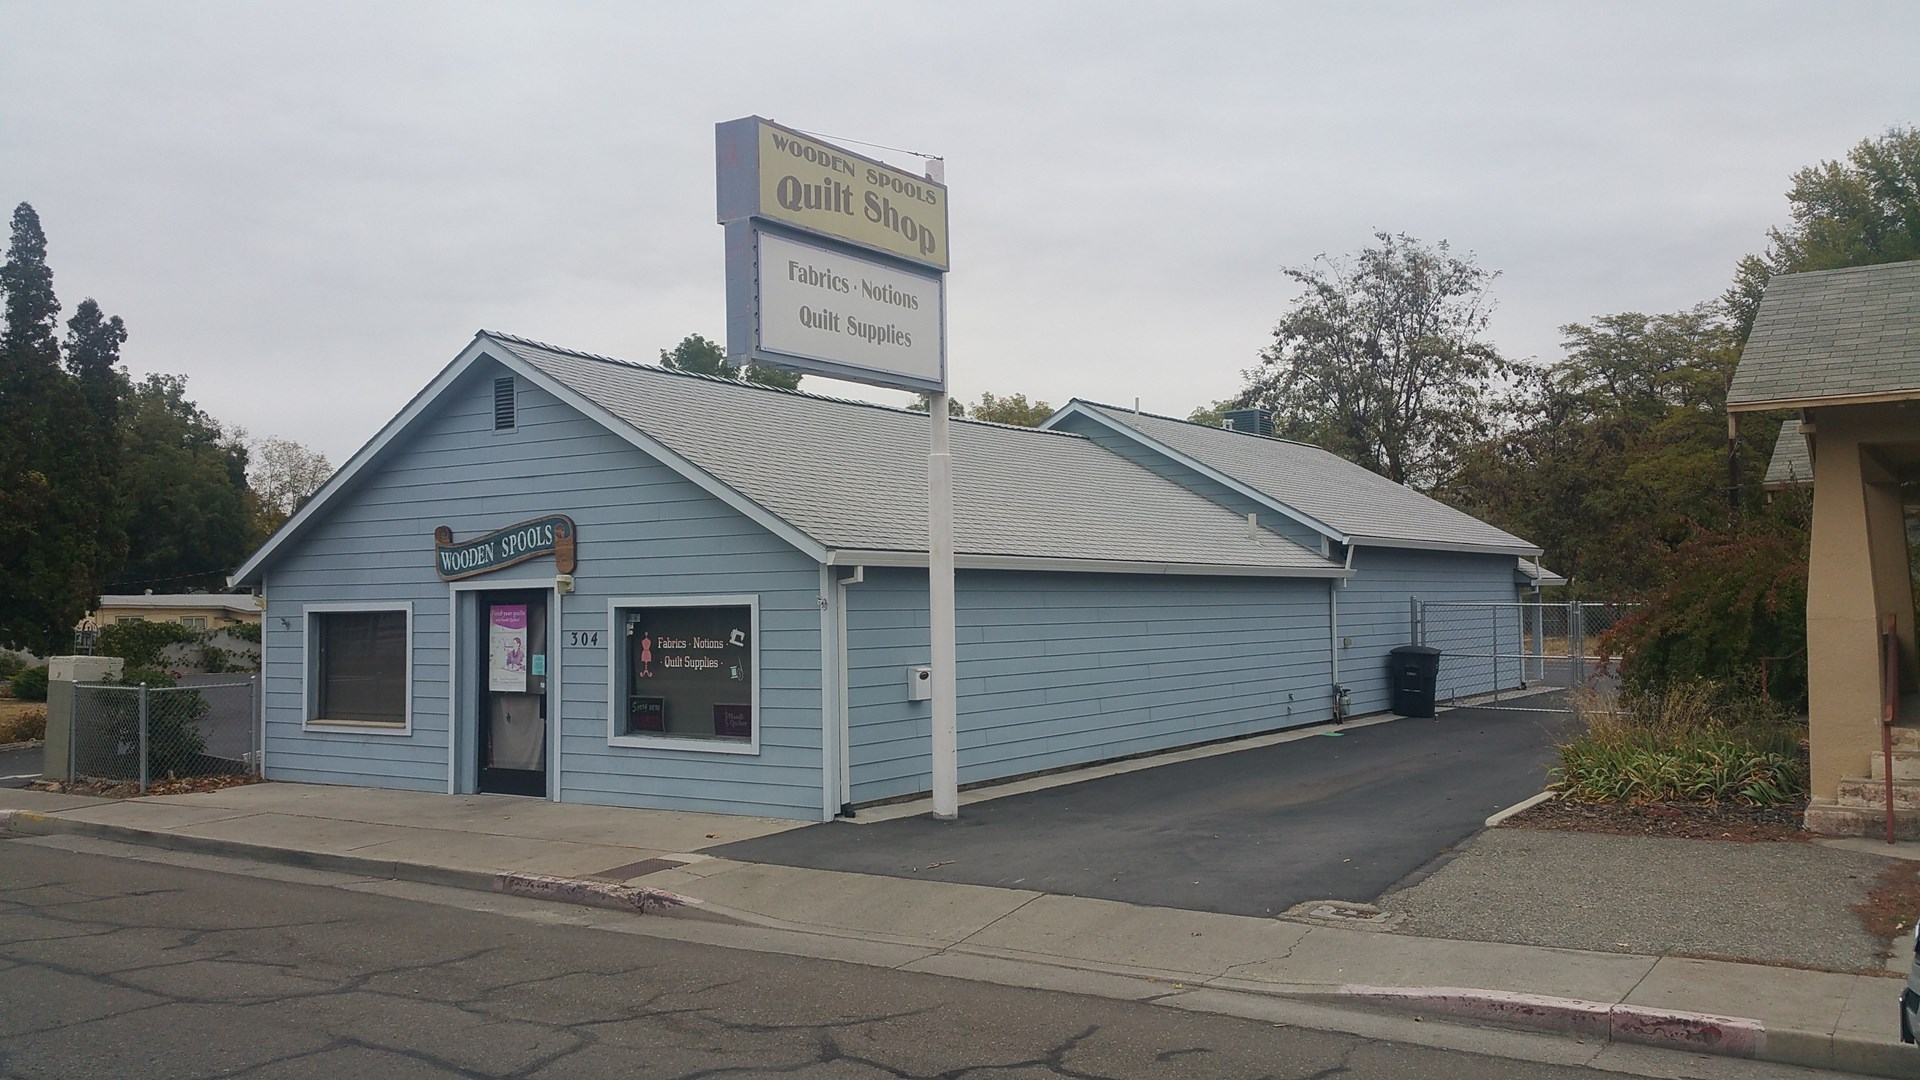 Commercial Property for Sale in Siskiyou County, California